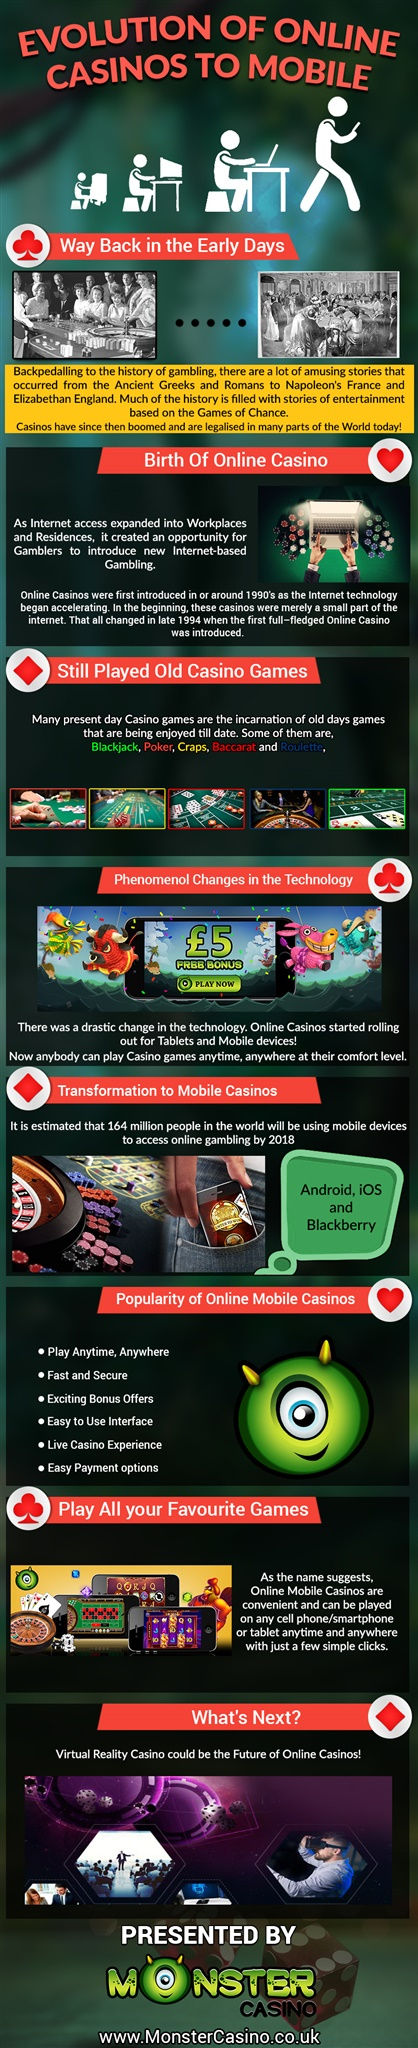 The Brief History of Online Mobile Casinos